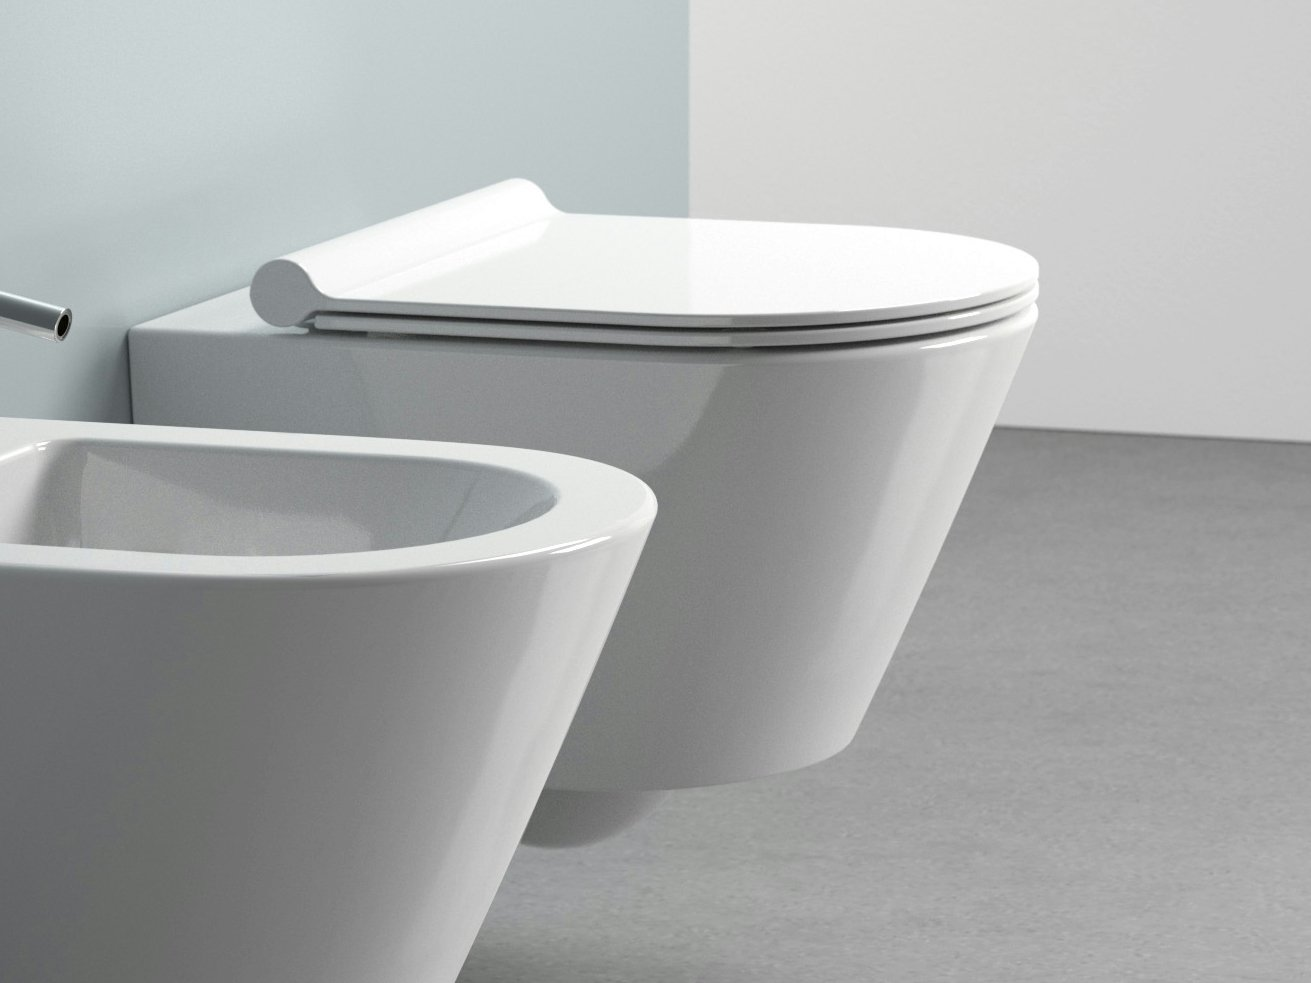 zero 50 toilet by ceramica catalano. Black Bedroom Furniture Sets. Home Design Ideas